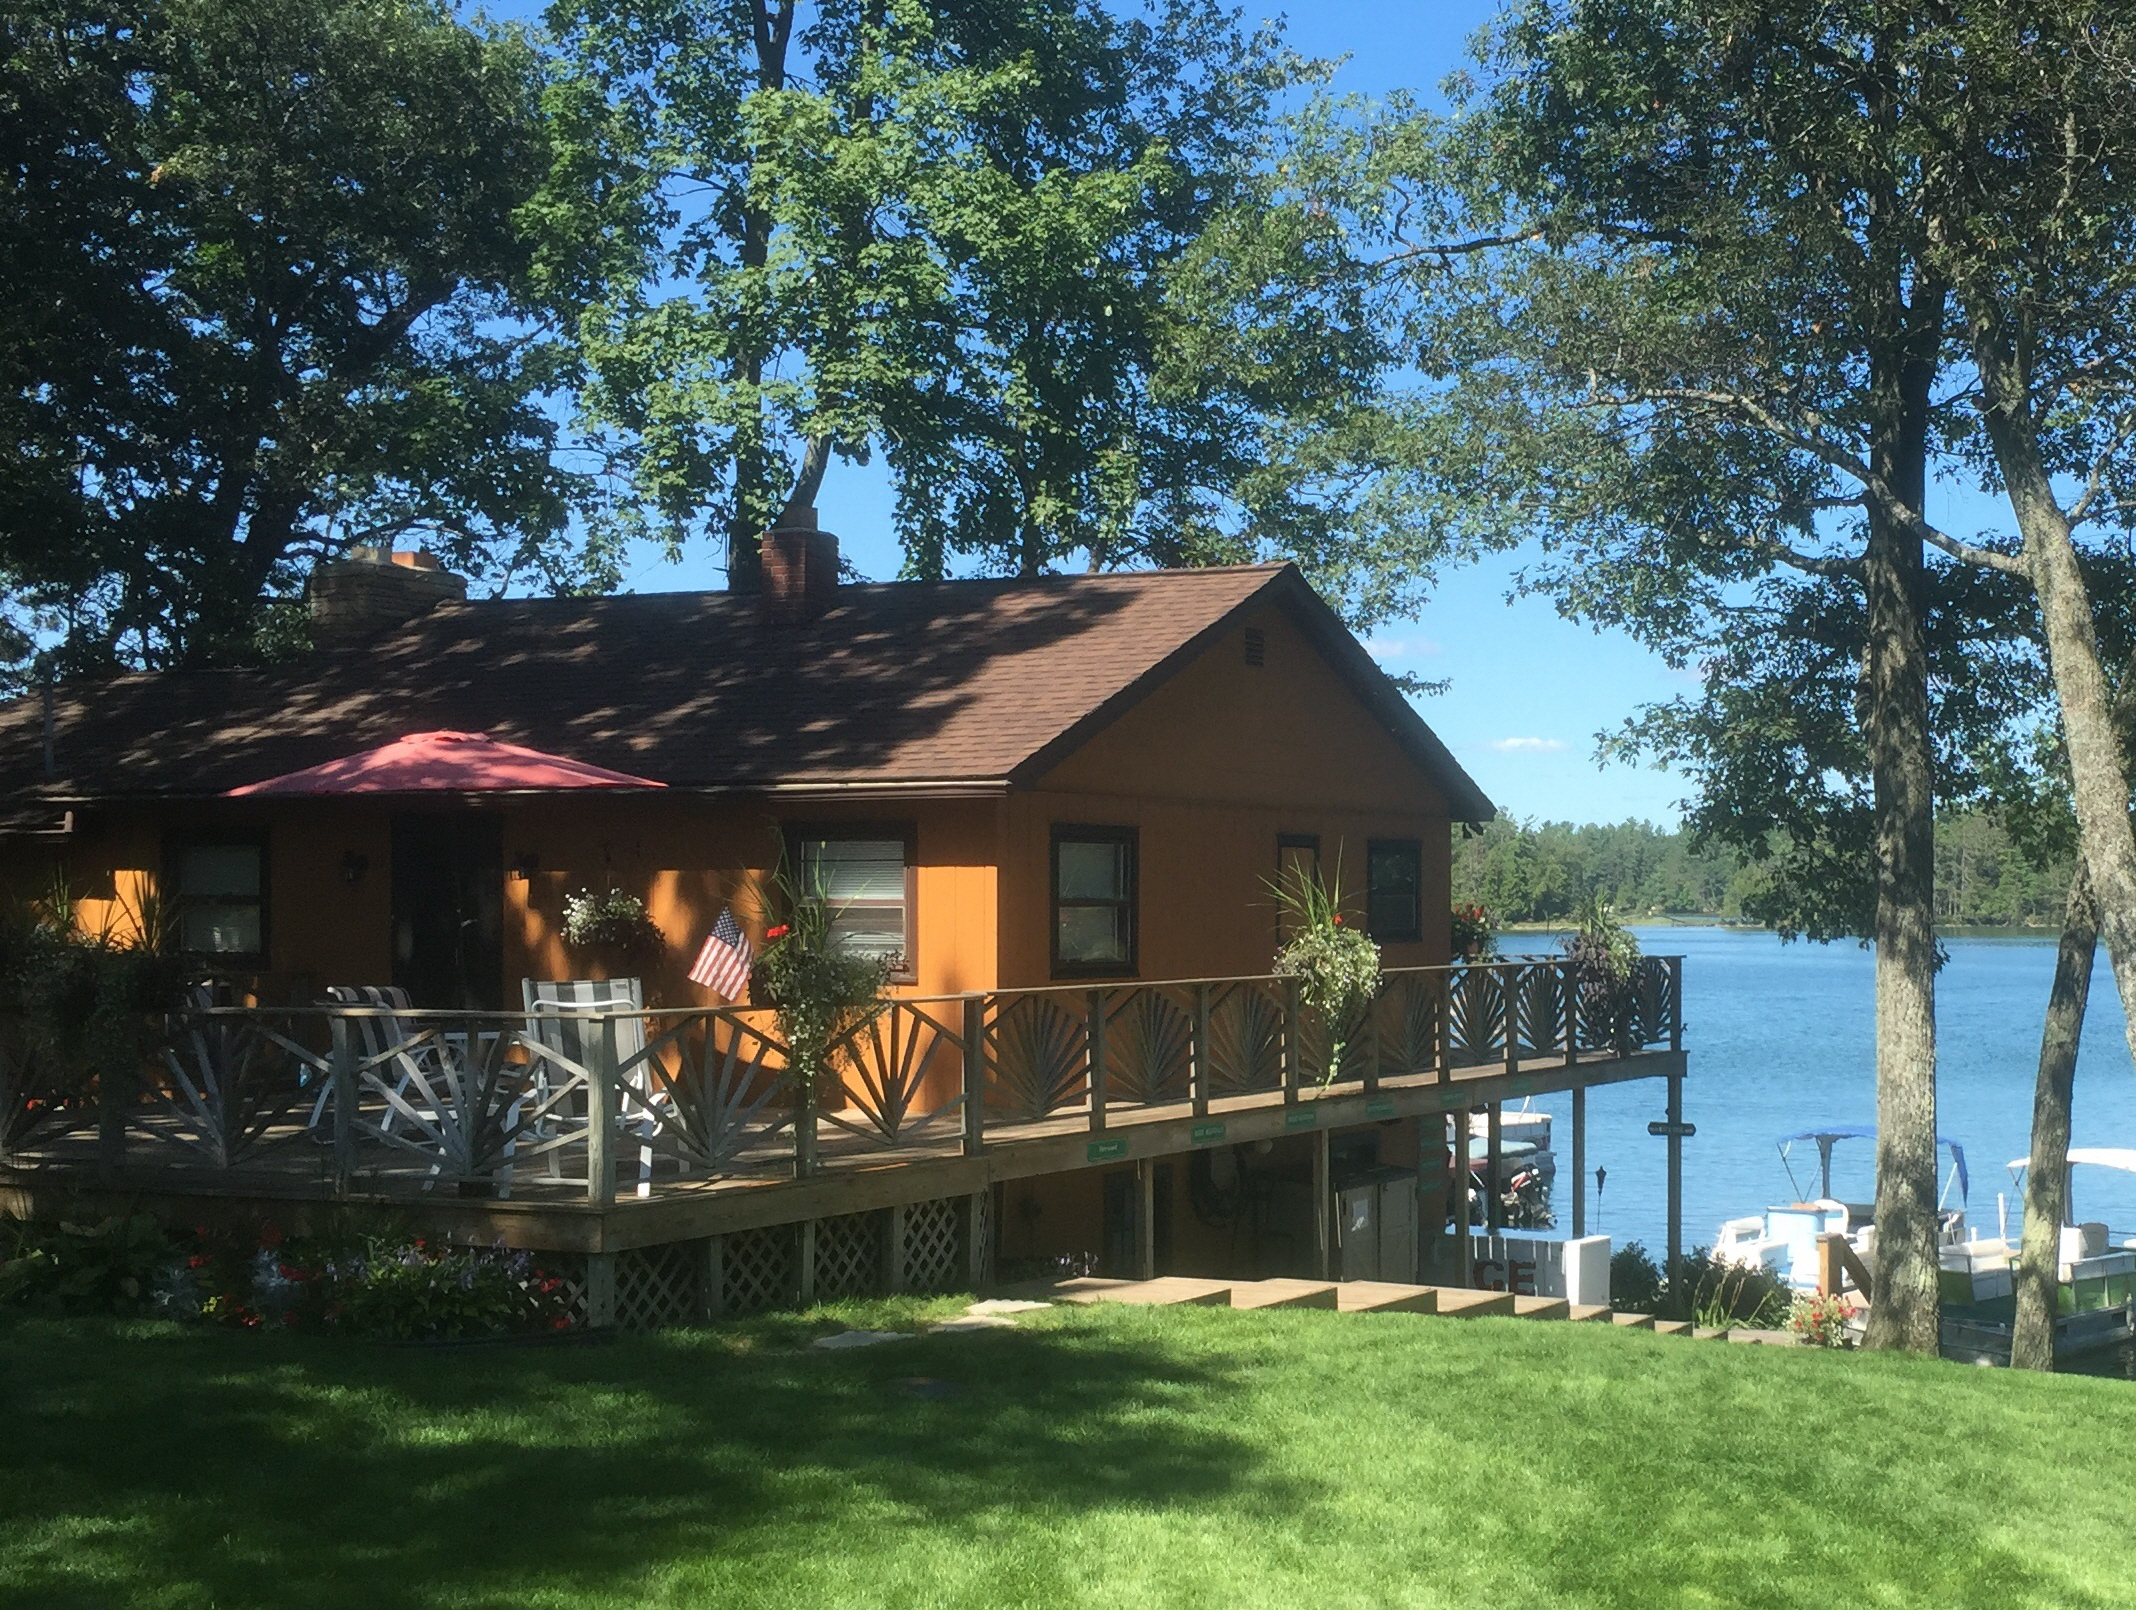 Clear lake Resort Michigan Lodging Family Vacation Resort